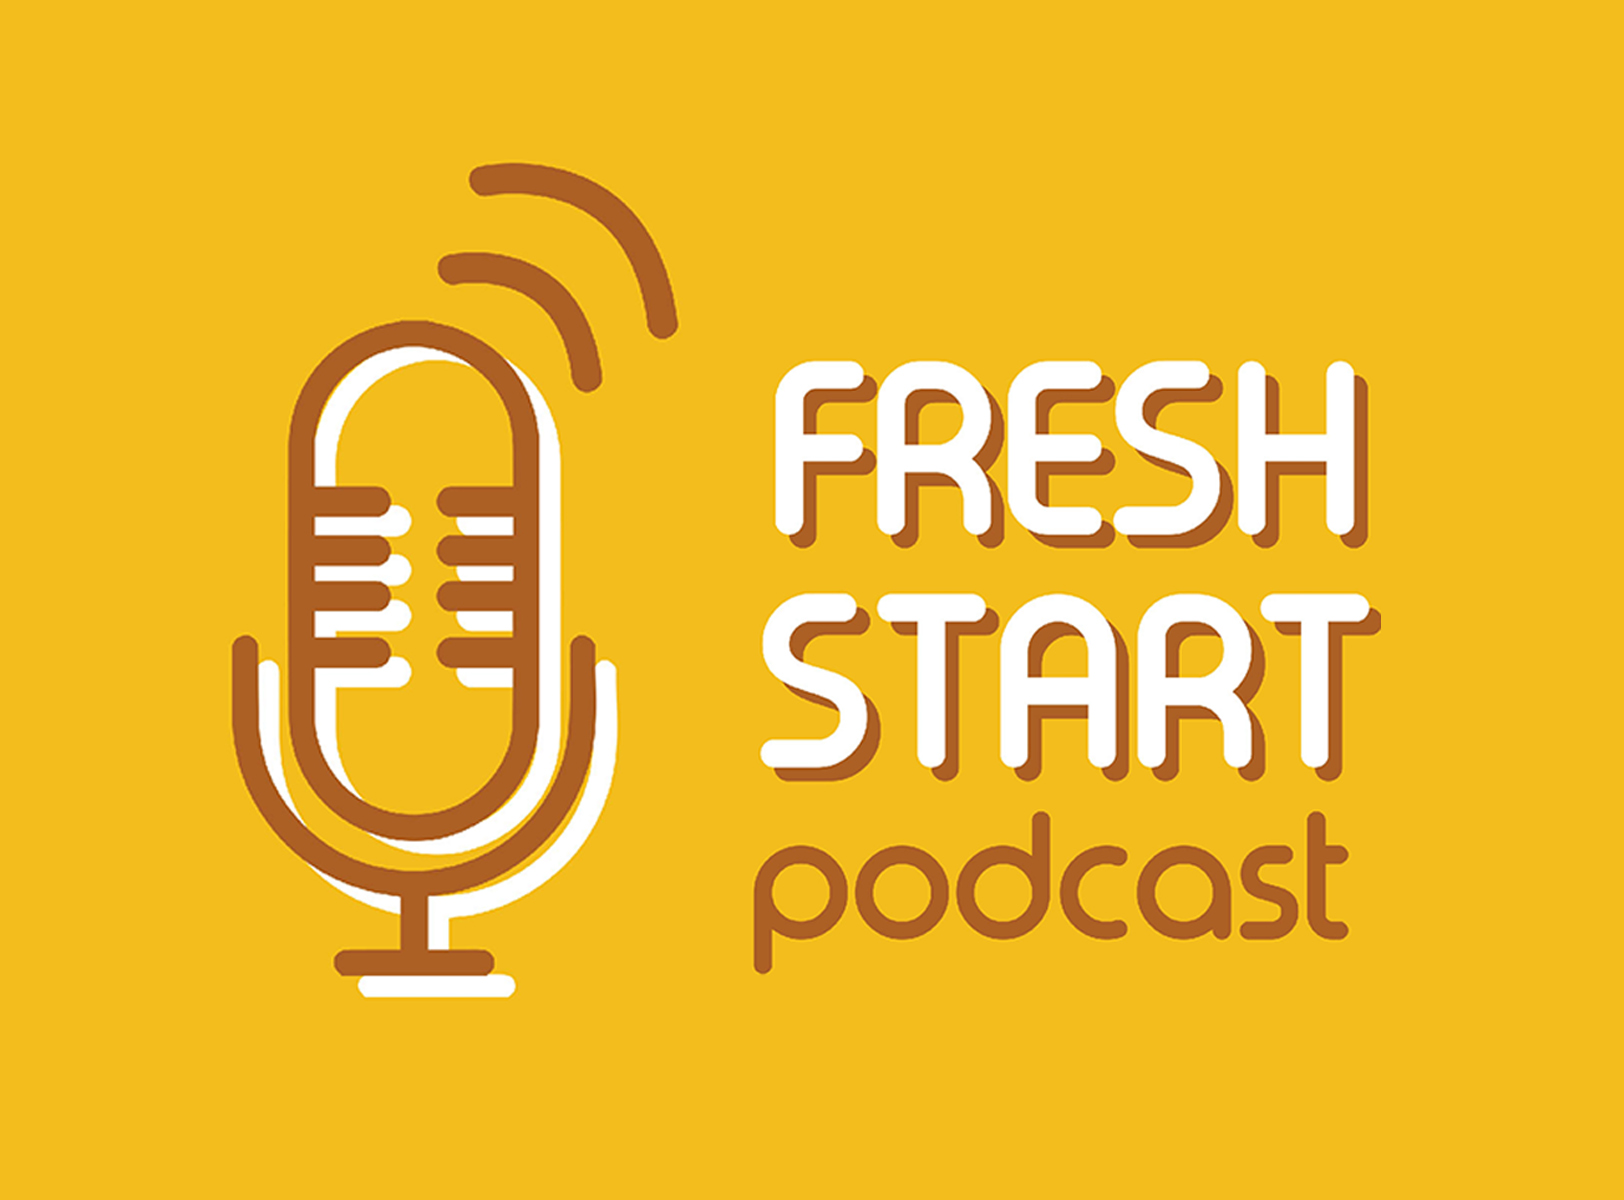 Fresh Start: Podcast News (1/30/2019 Wed.)